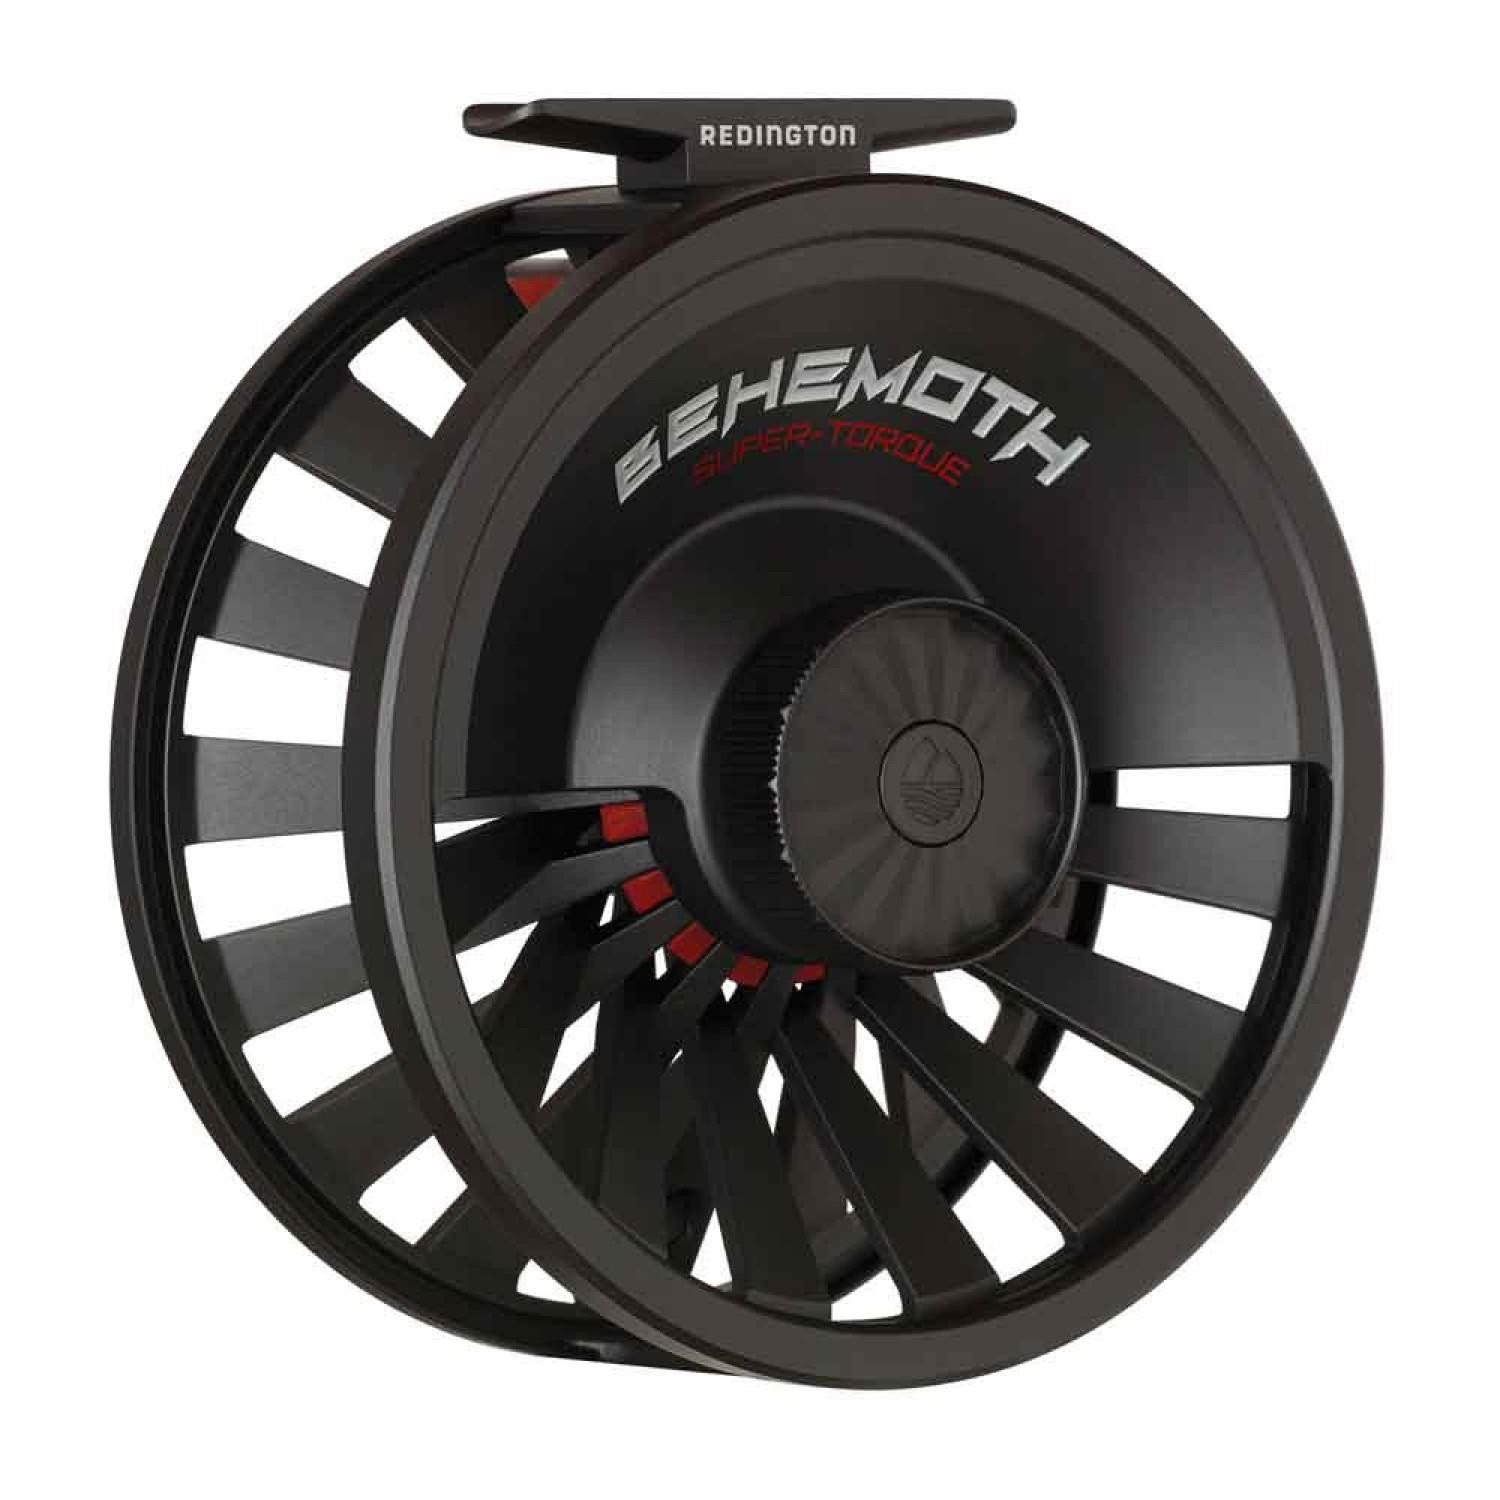 Redington Behemoth series fly reel spool